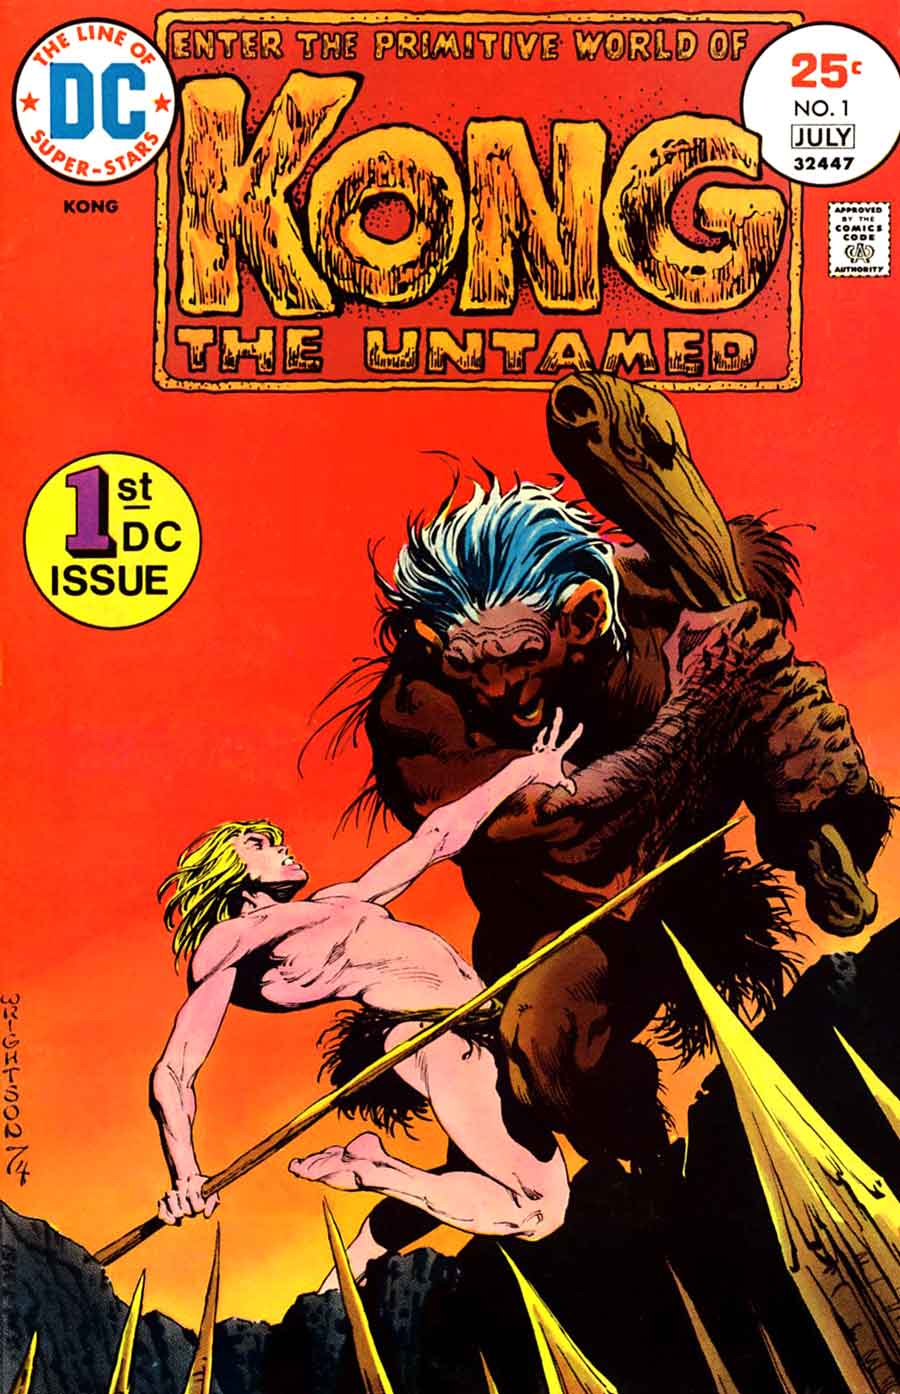 Kong the Untamed v1 #1 - Bernie Wrightson dc bronze age comic book cover art